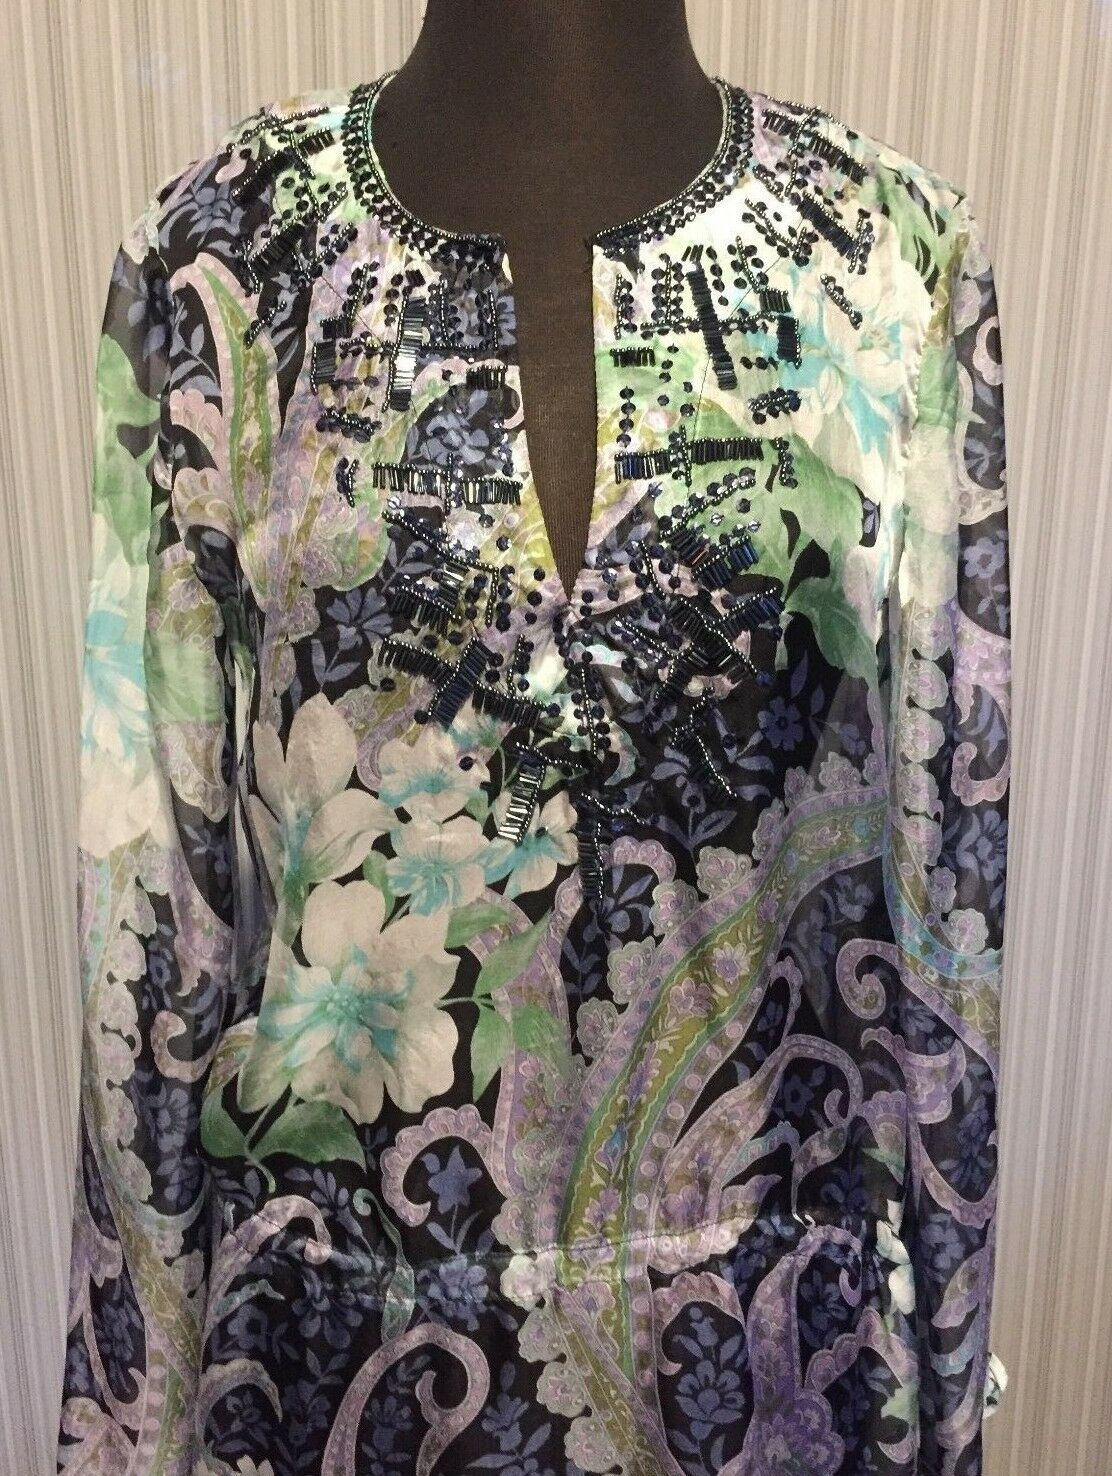 Cache Embellish Peasant Boho Top M L XL Sheer Illusion Drawstring Waist  NWT